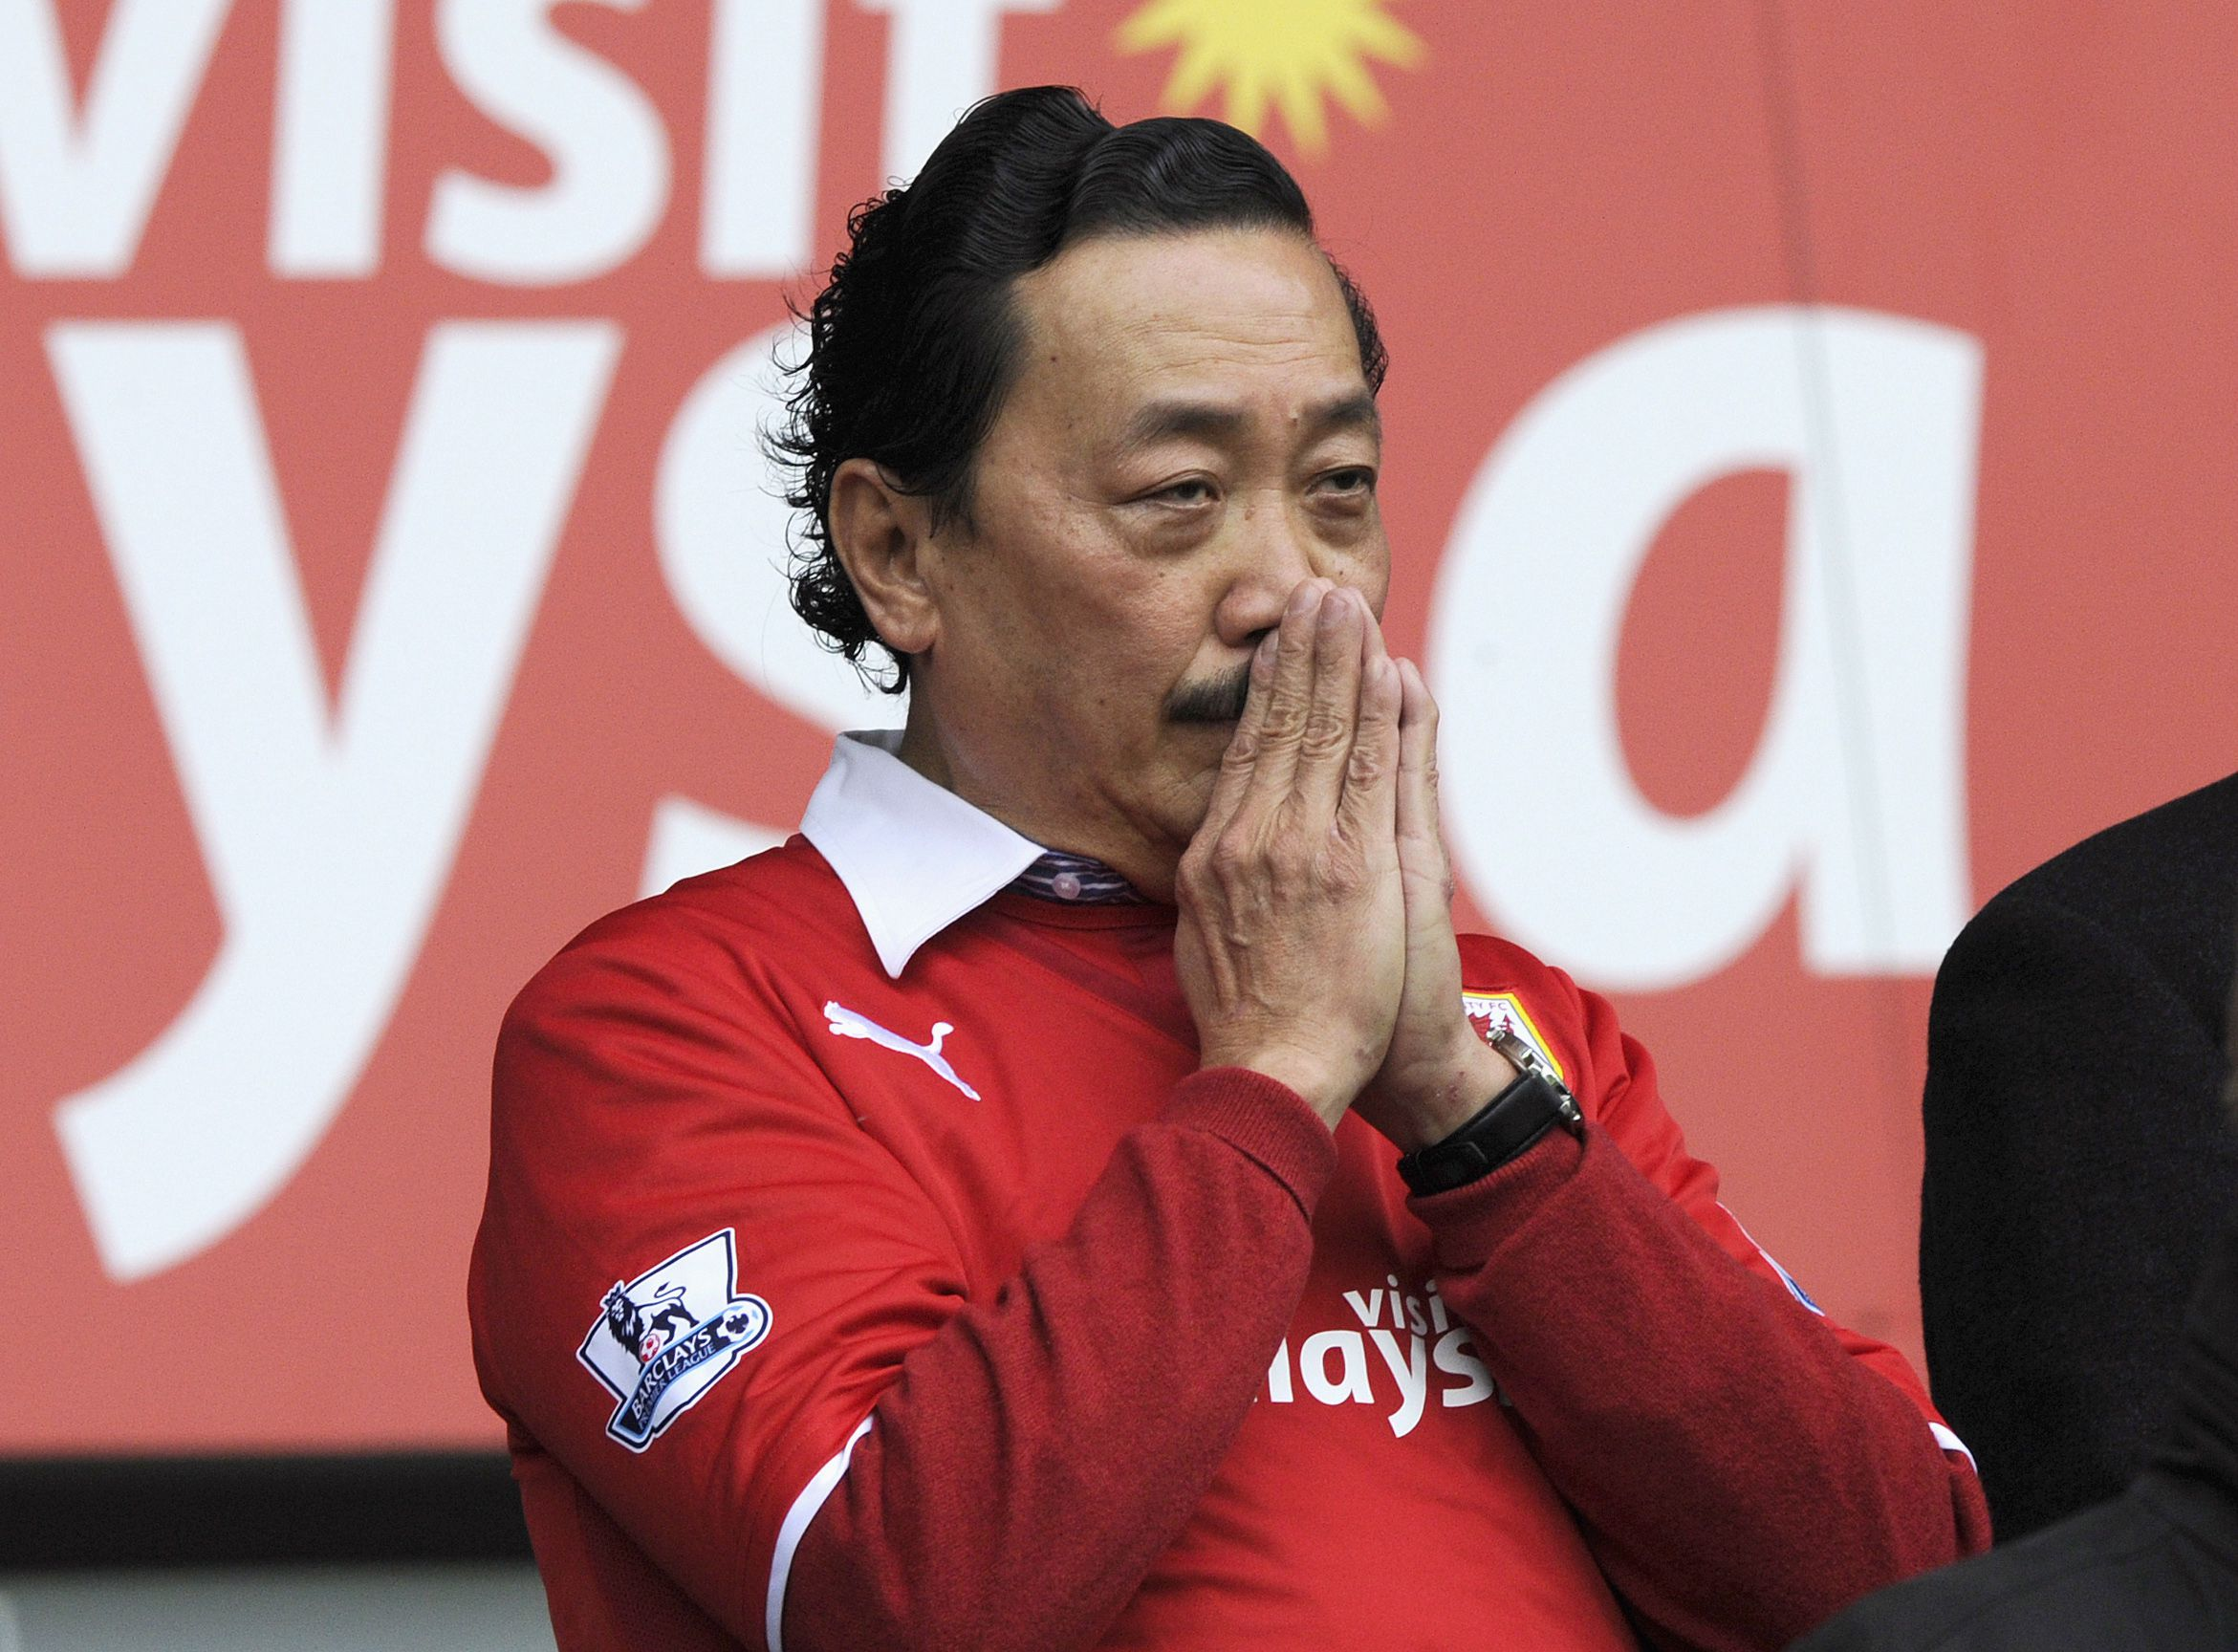 """Cardiff City's owner Vincent Tan looks on during their English Premier League soccer match against Crystal Palace at Cardiff City Stadium in Cardiff, Wales, April 5, 2014. REUTERS/Rebecca Naden (BRITAIN - Tags: SPORT SOCCER) NO USE WITH UNAUTHORIZED AUDIO, VIDEO, DATA, FIXTURE LISTS, CLUB/LEAGUE LOGOS OR """"LIVE"""" SERVICES. ONLINE IN-MATCH USE LIMITED TO 45 IMAGES, NO VIDEO EMULATION. NO USE IN BETTING, GAMES OR SINGLE CLUB/LEAGUE/PLAYER PUBLICATIONS. FOR EDITORIAL USE ONLY. NOT FOR SALE FOR MARKETING OR ADVERTISING CAMPAIGNS - RTR3K24U"""